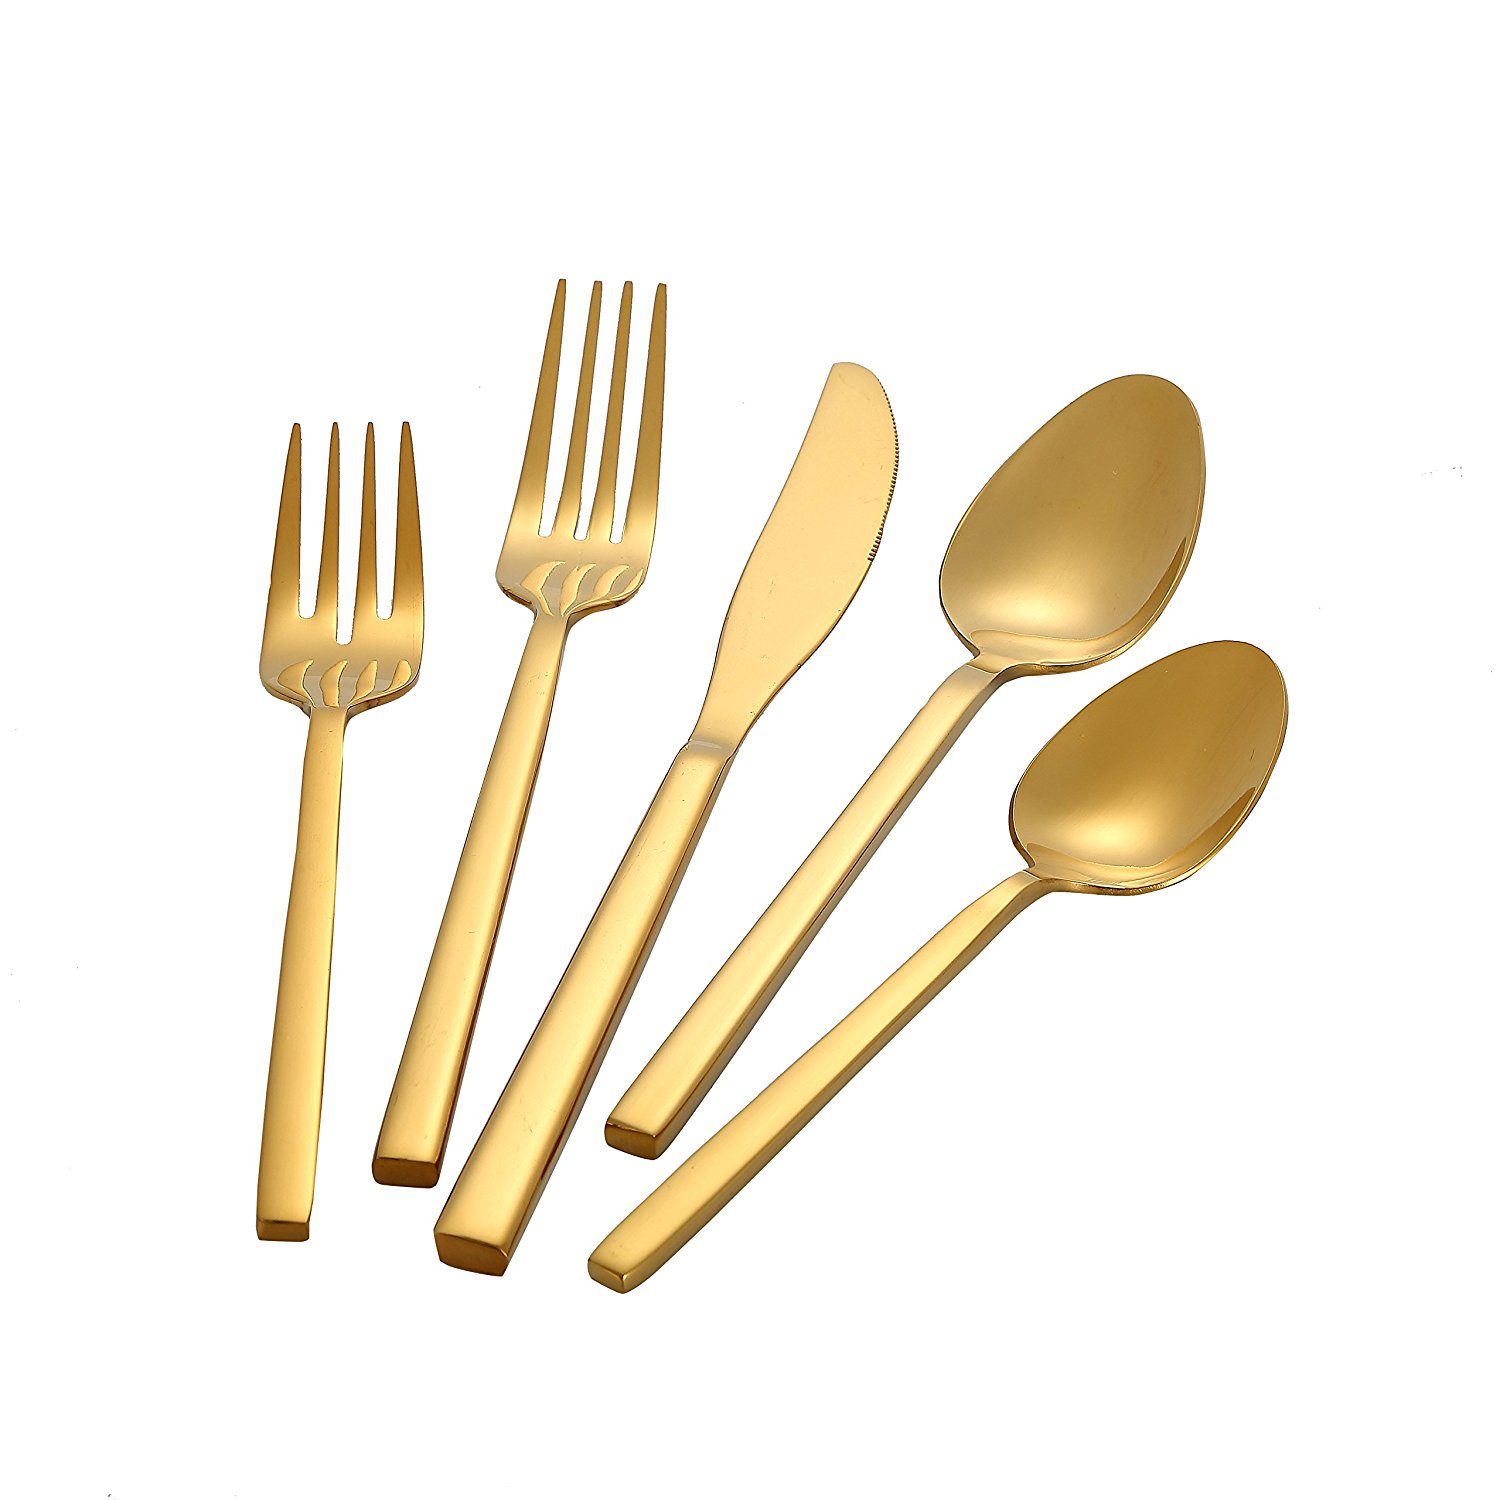 Gold Cutlery Sets 2018 Best Selling Wholesale Restaurant Gold Flatware Matte Gold Cutlery Set Buy Gold Plated Flatware Gold Plated Flatware Sets Gold Flatware Sets